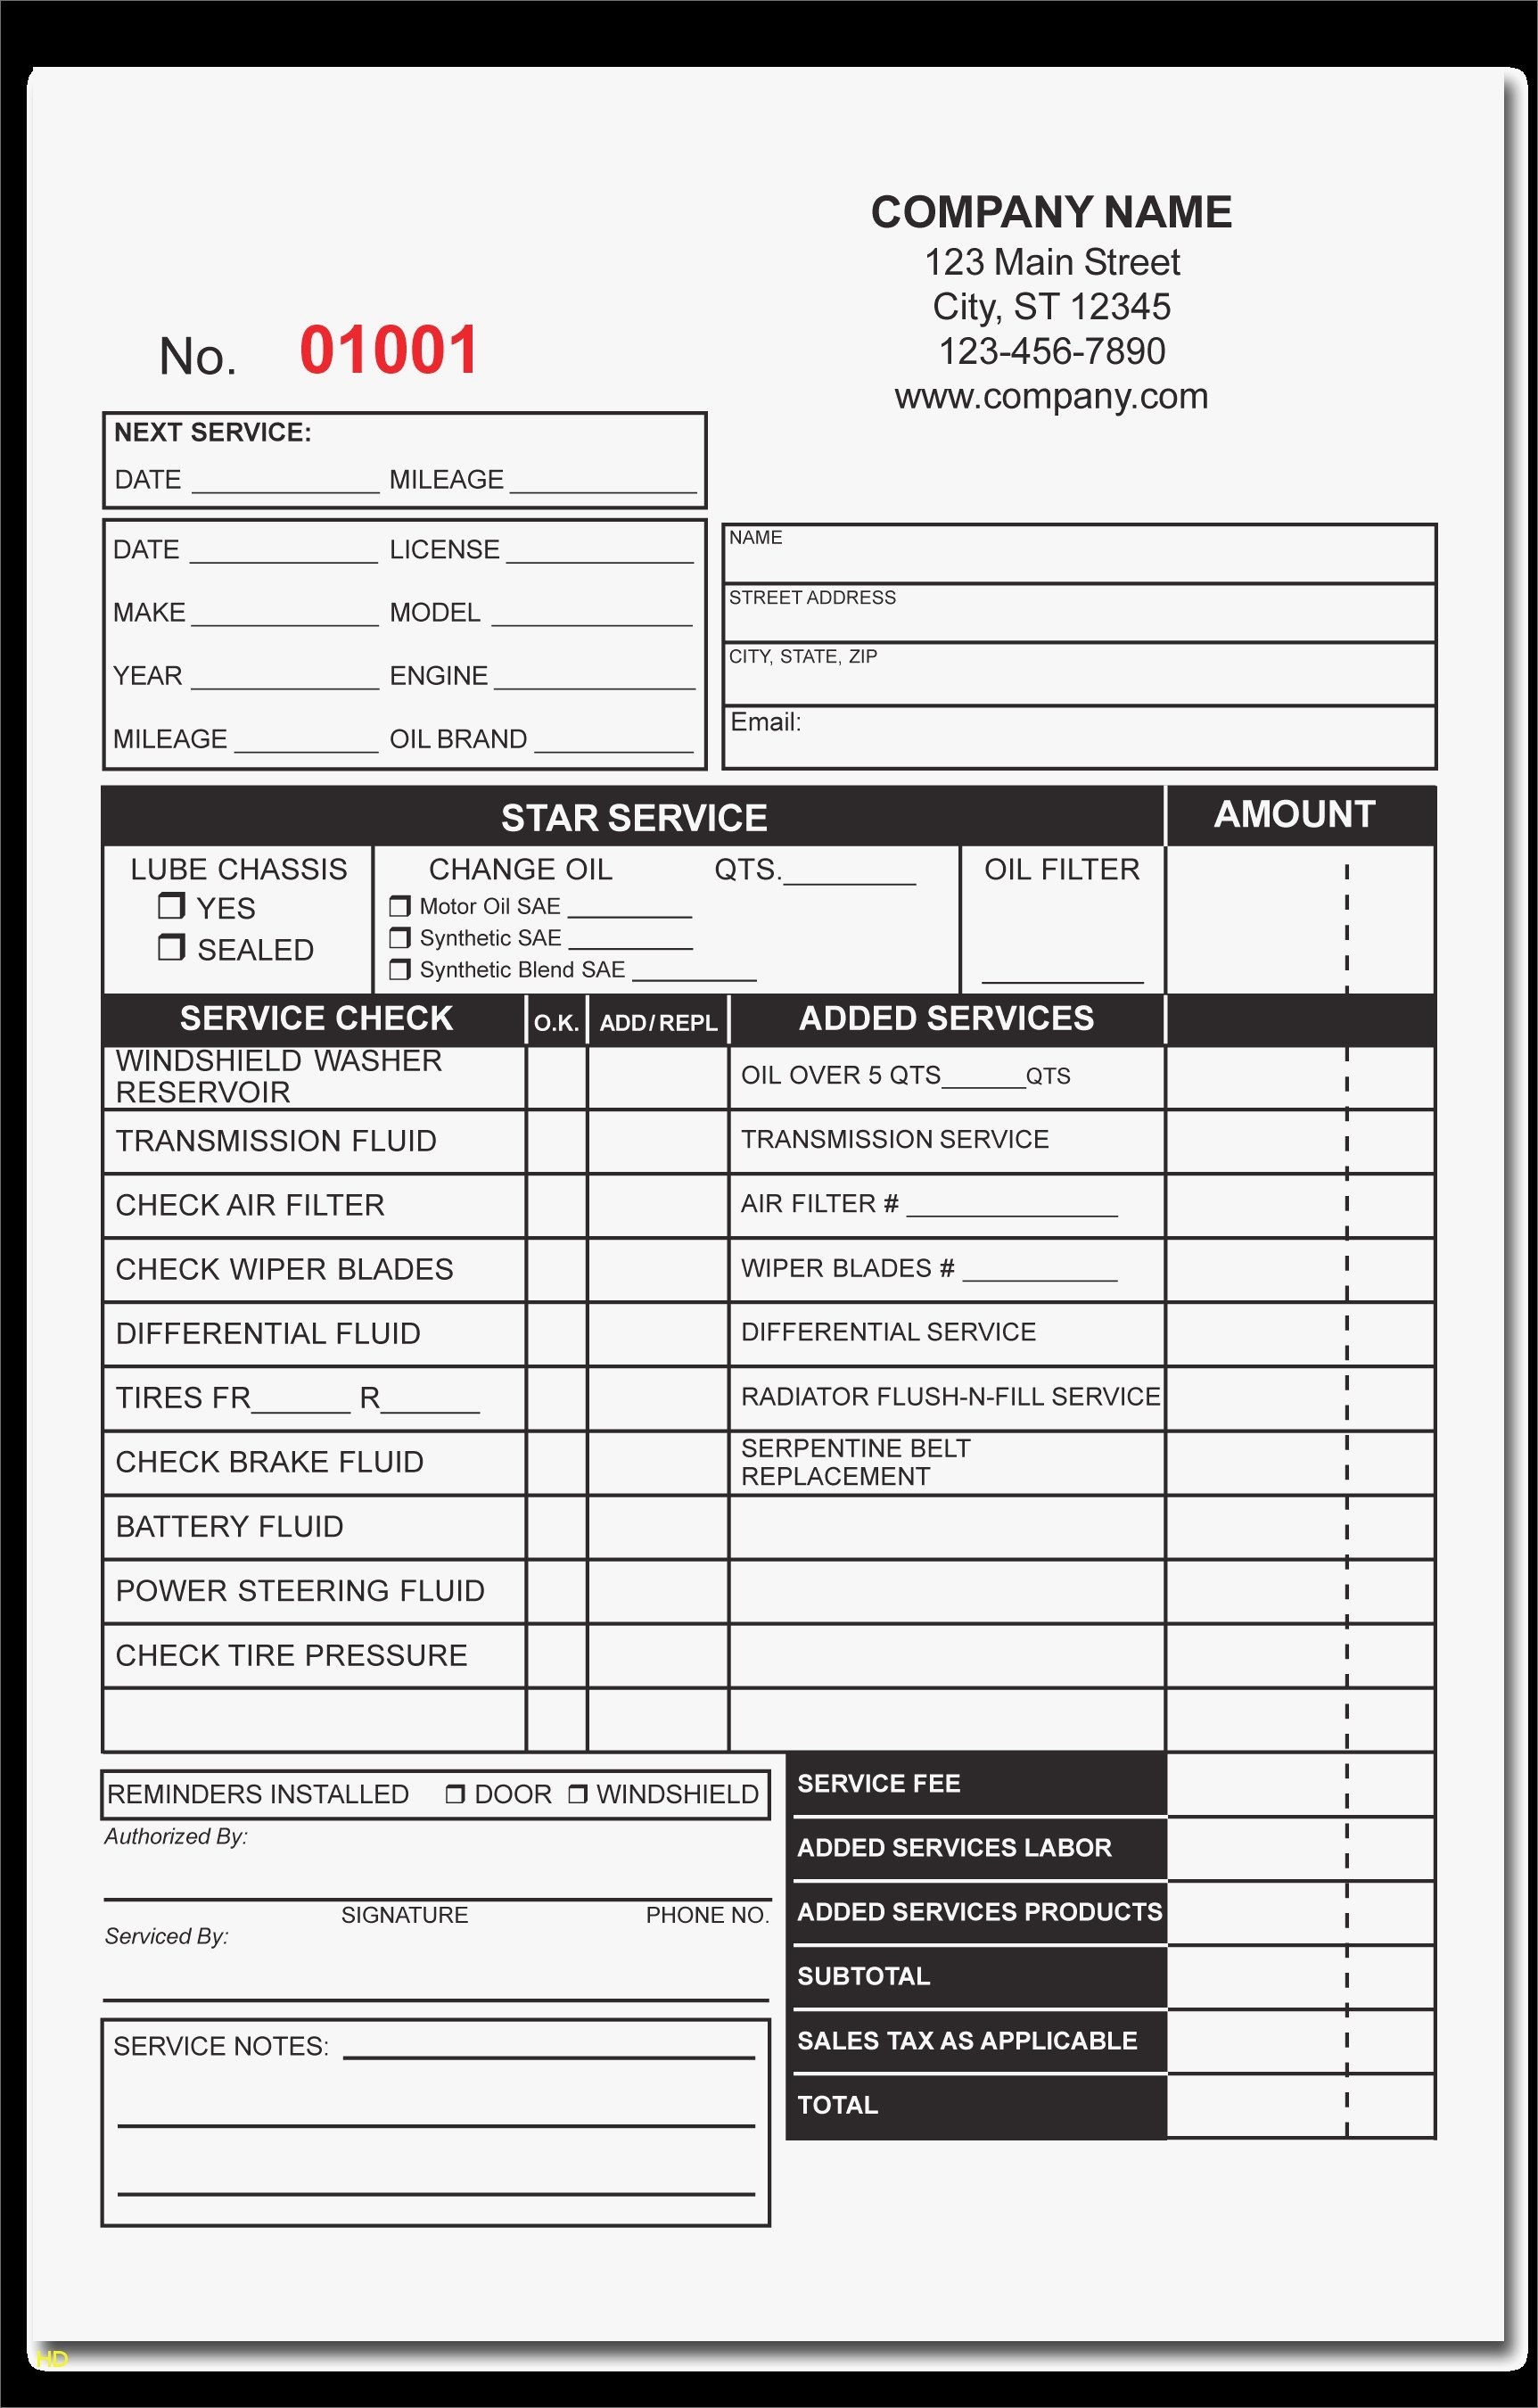 Auto Repair Template Free Awesome Free Printable Auto Repair Invoice - Free Printable Auto Repair Invoice Template